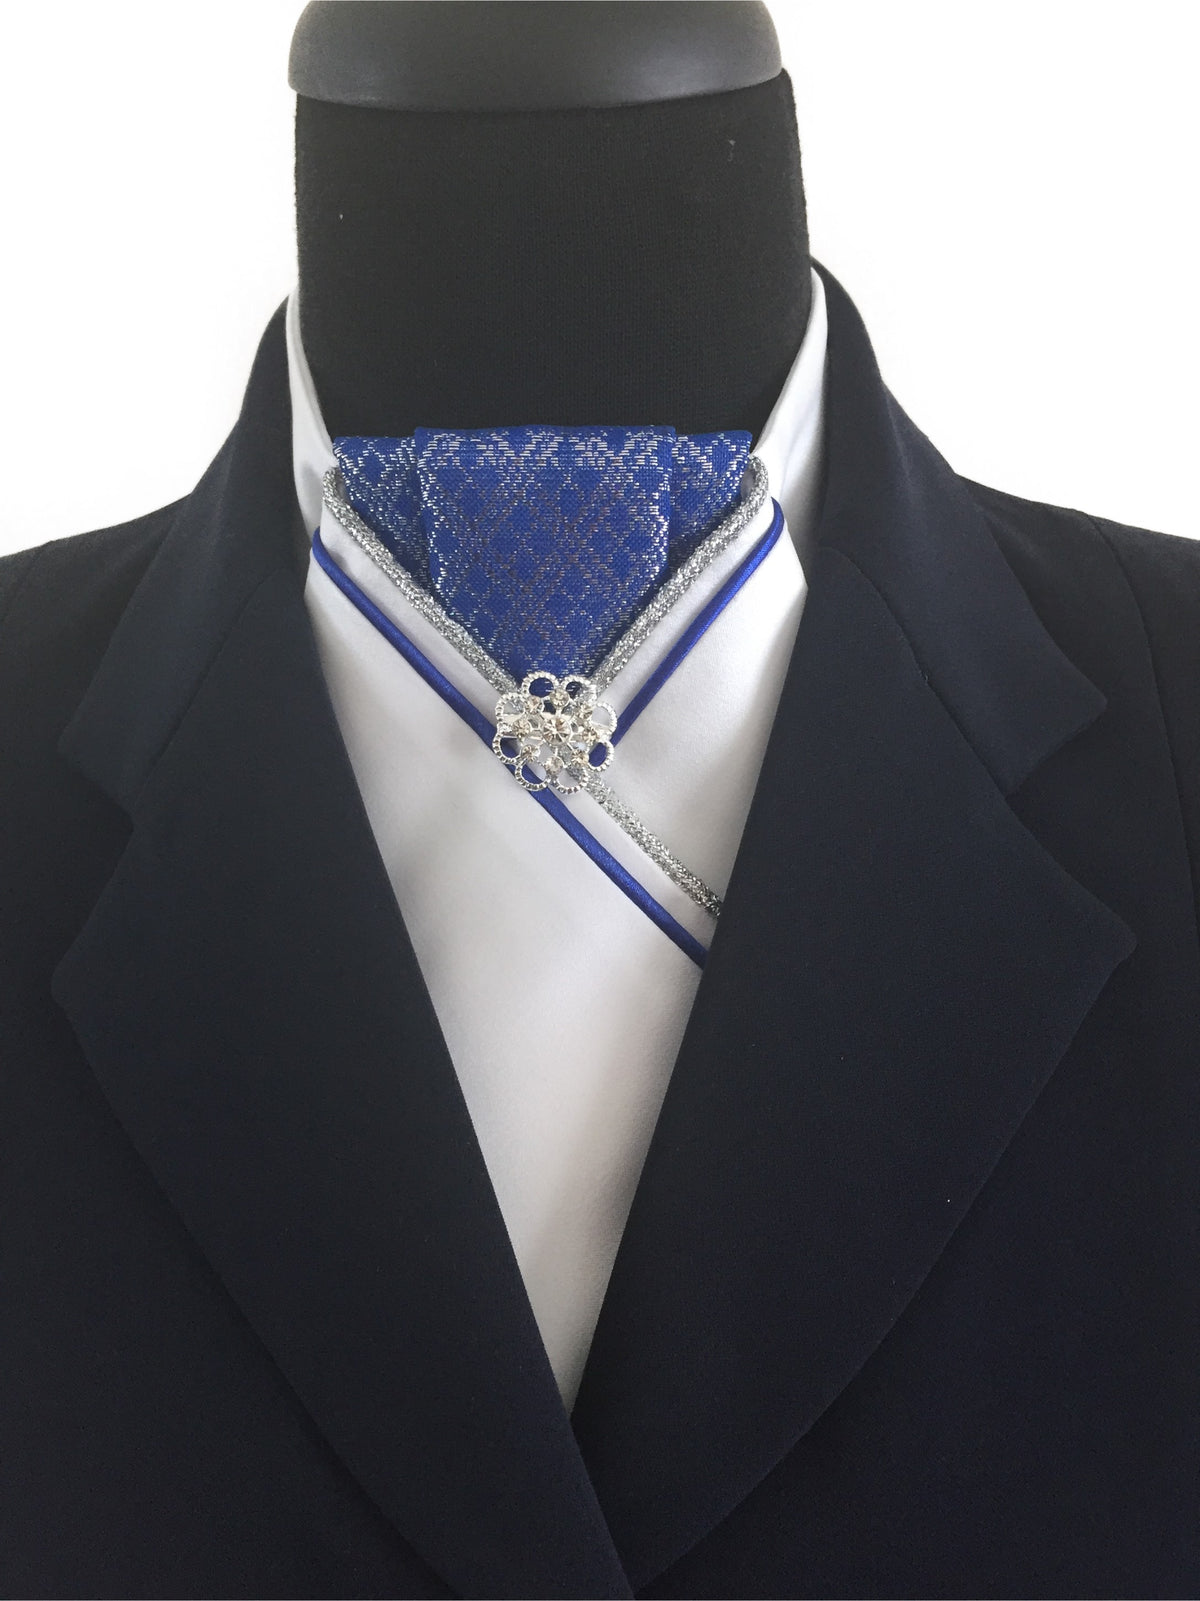 White Stock Tie with Royal Blue and Silver Jacquard Center